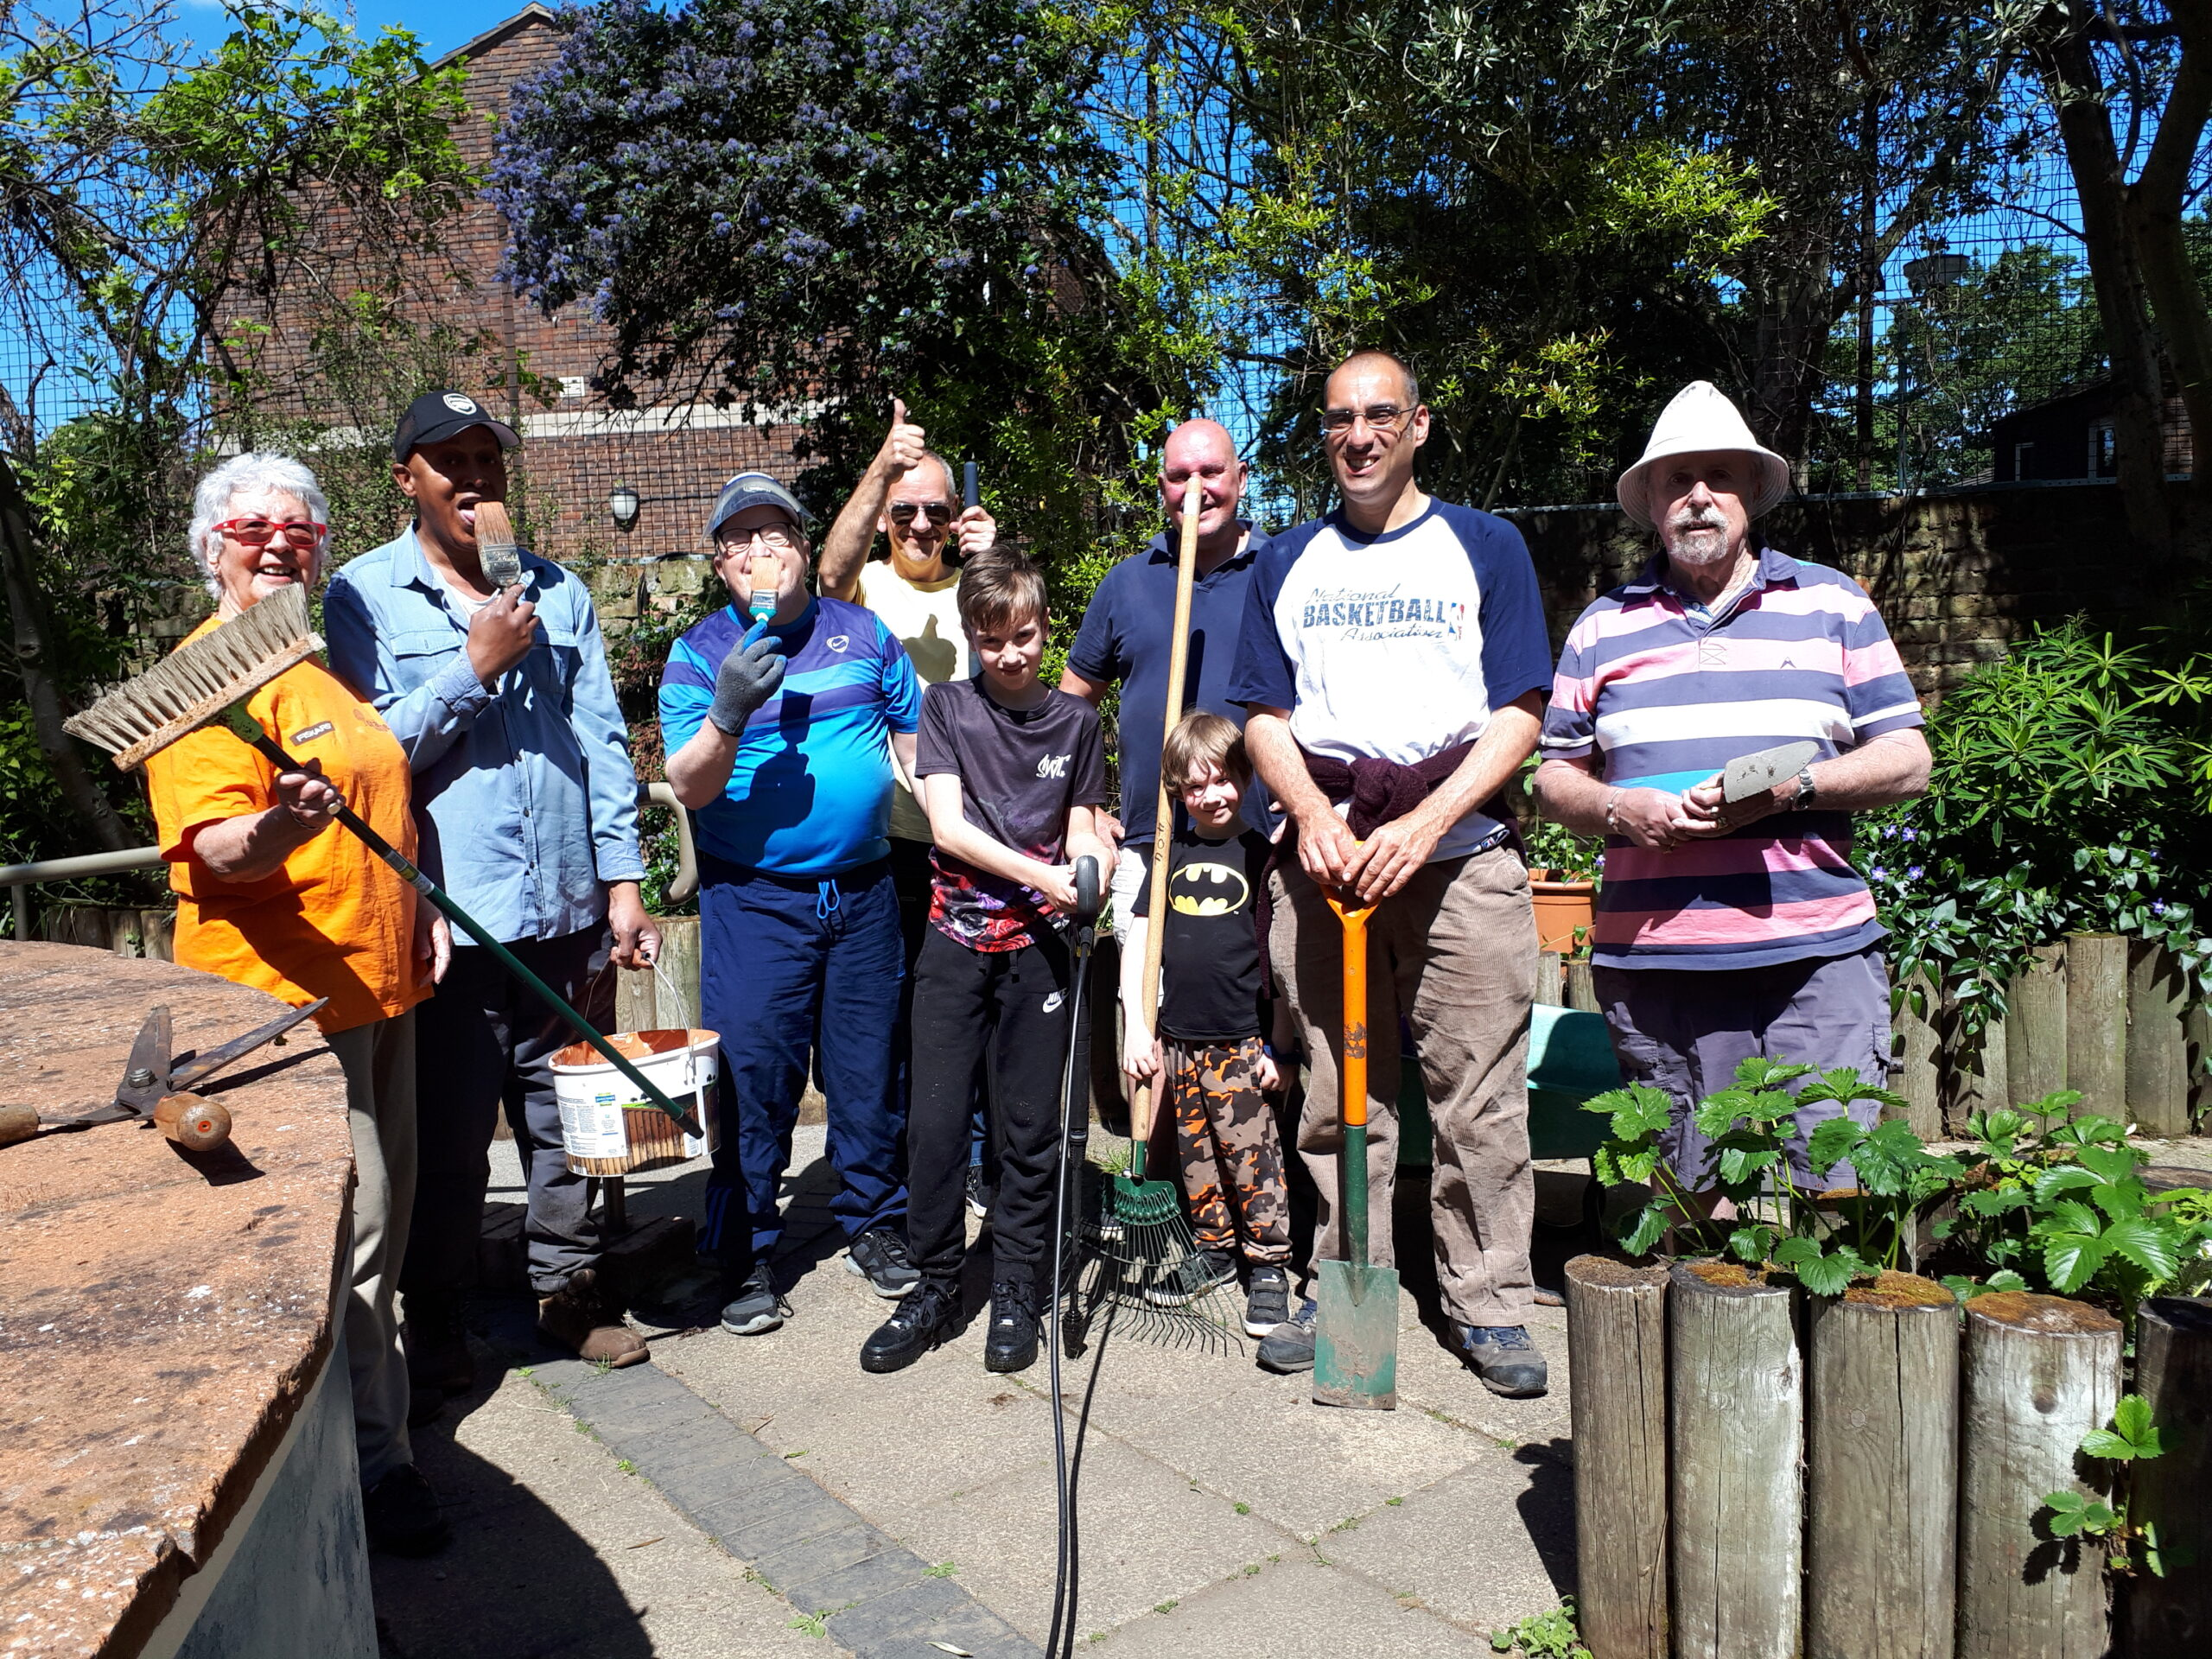 Image shows a group photo of garden volunteers smiling an posing with tools.